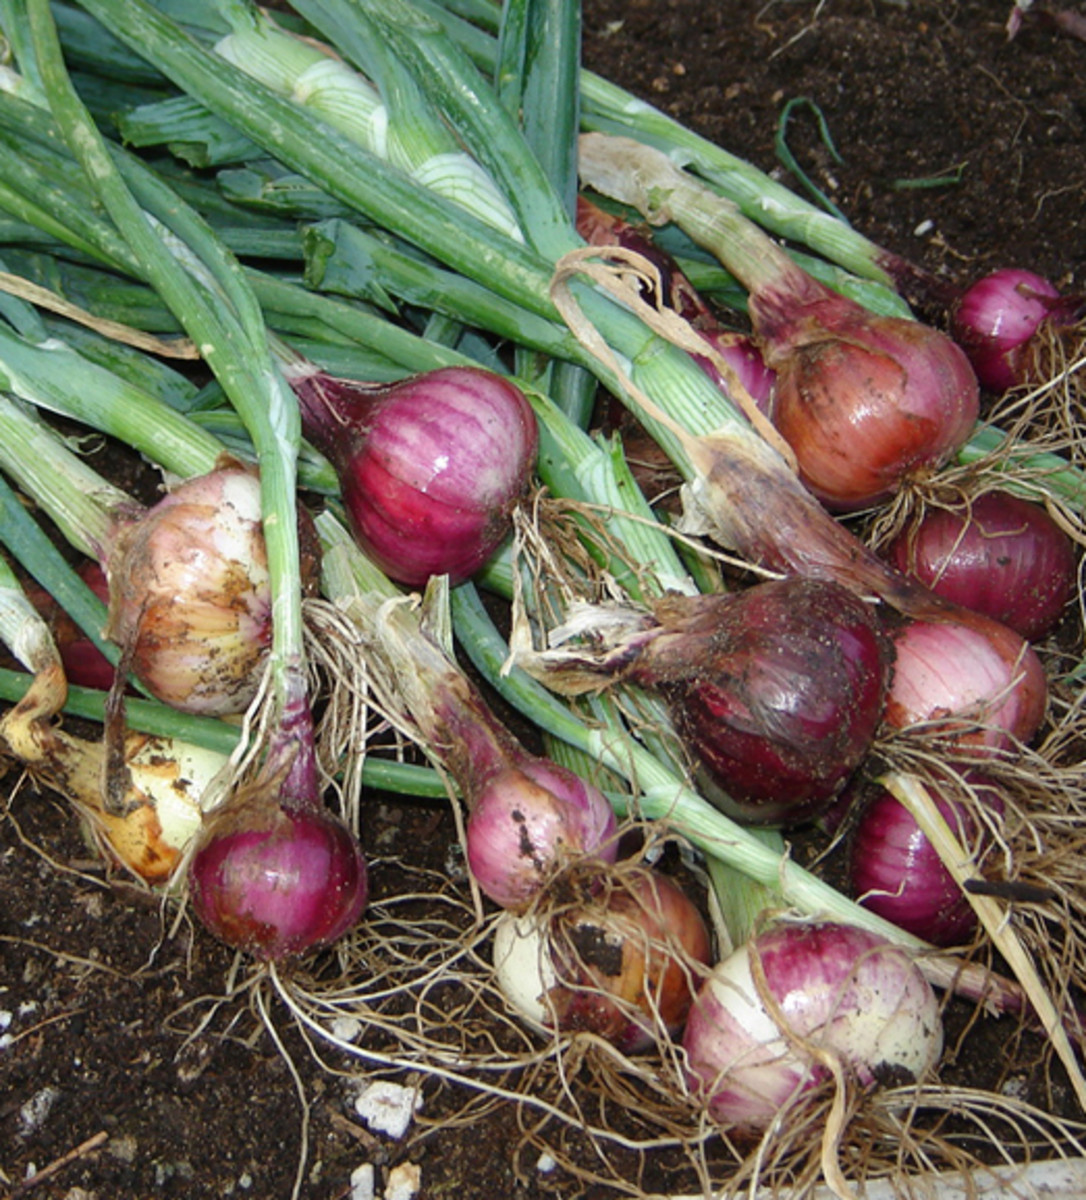 Onions harvested from raised garden beds. 2013 Harvest.